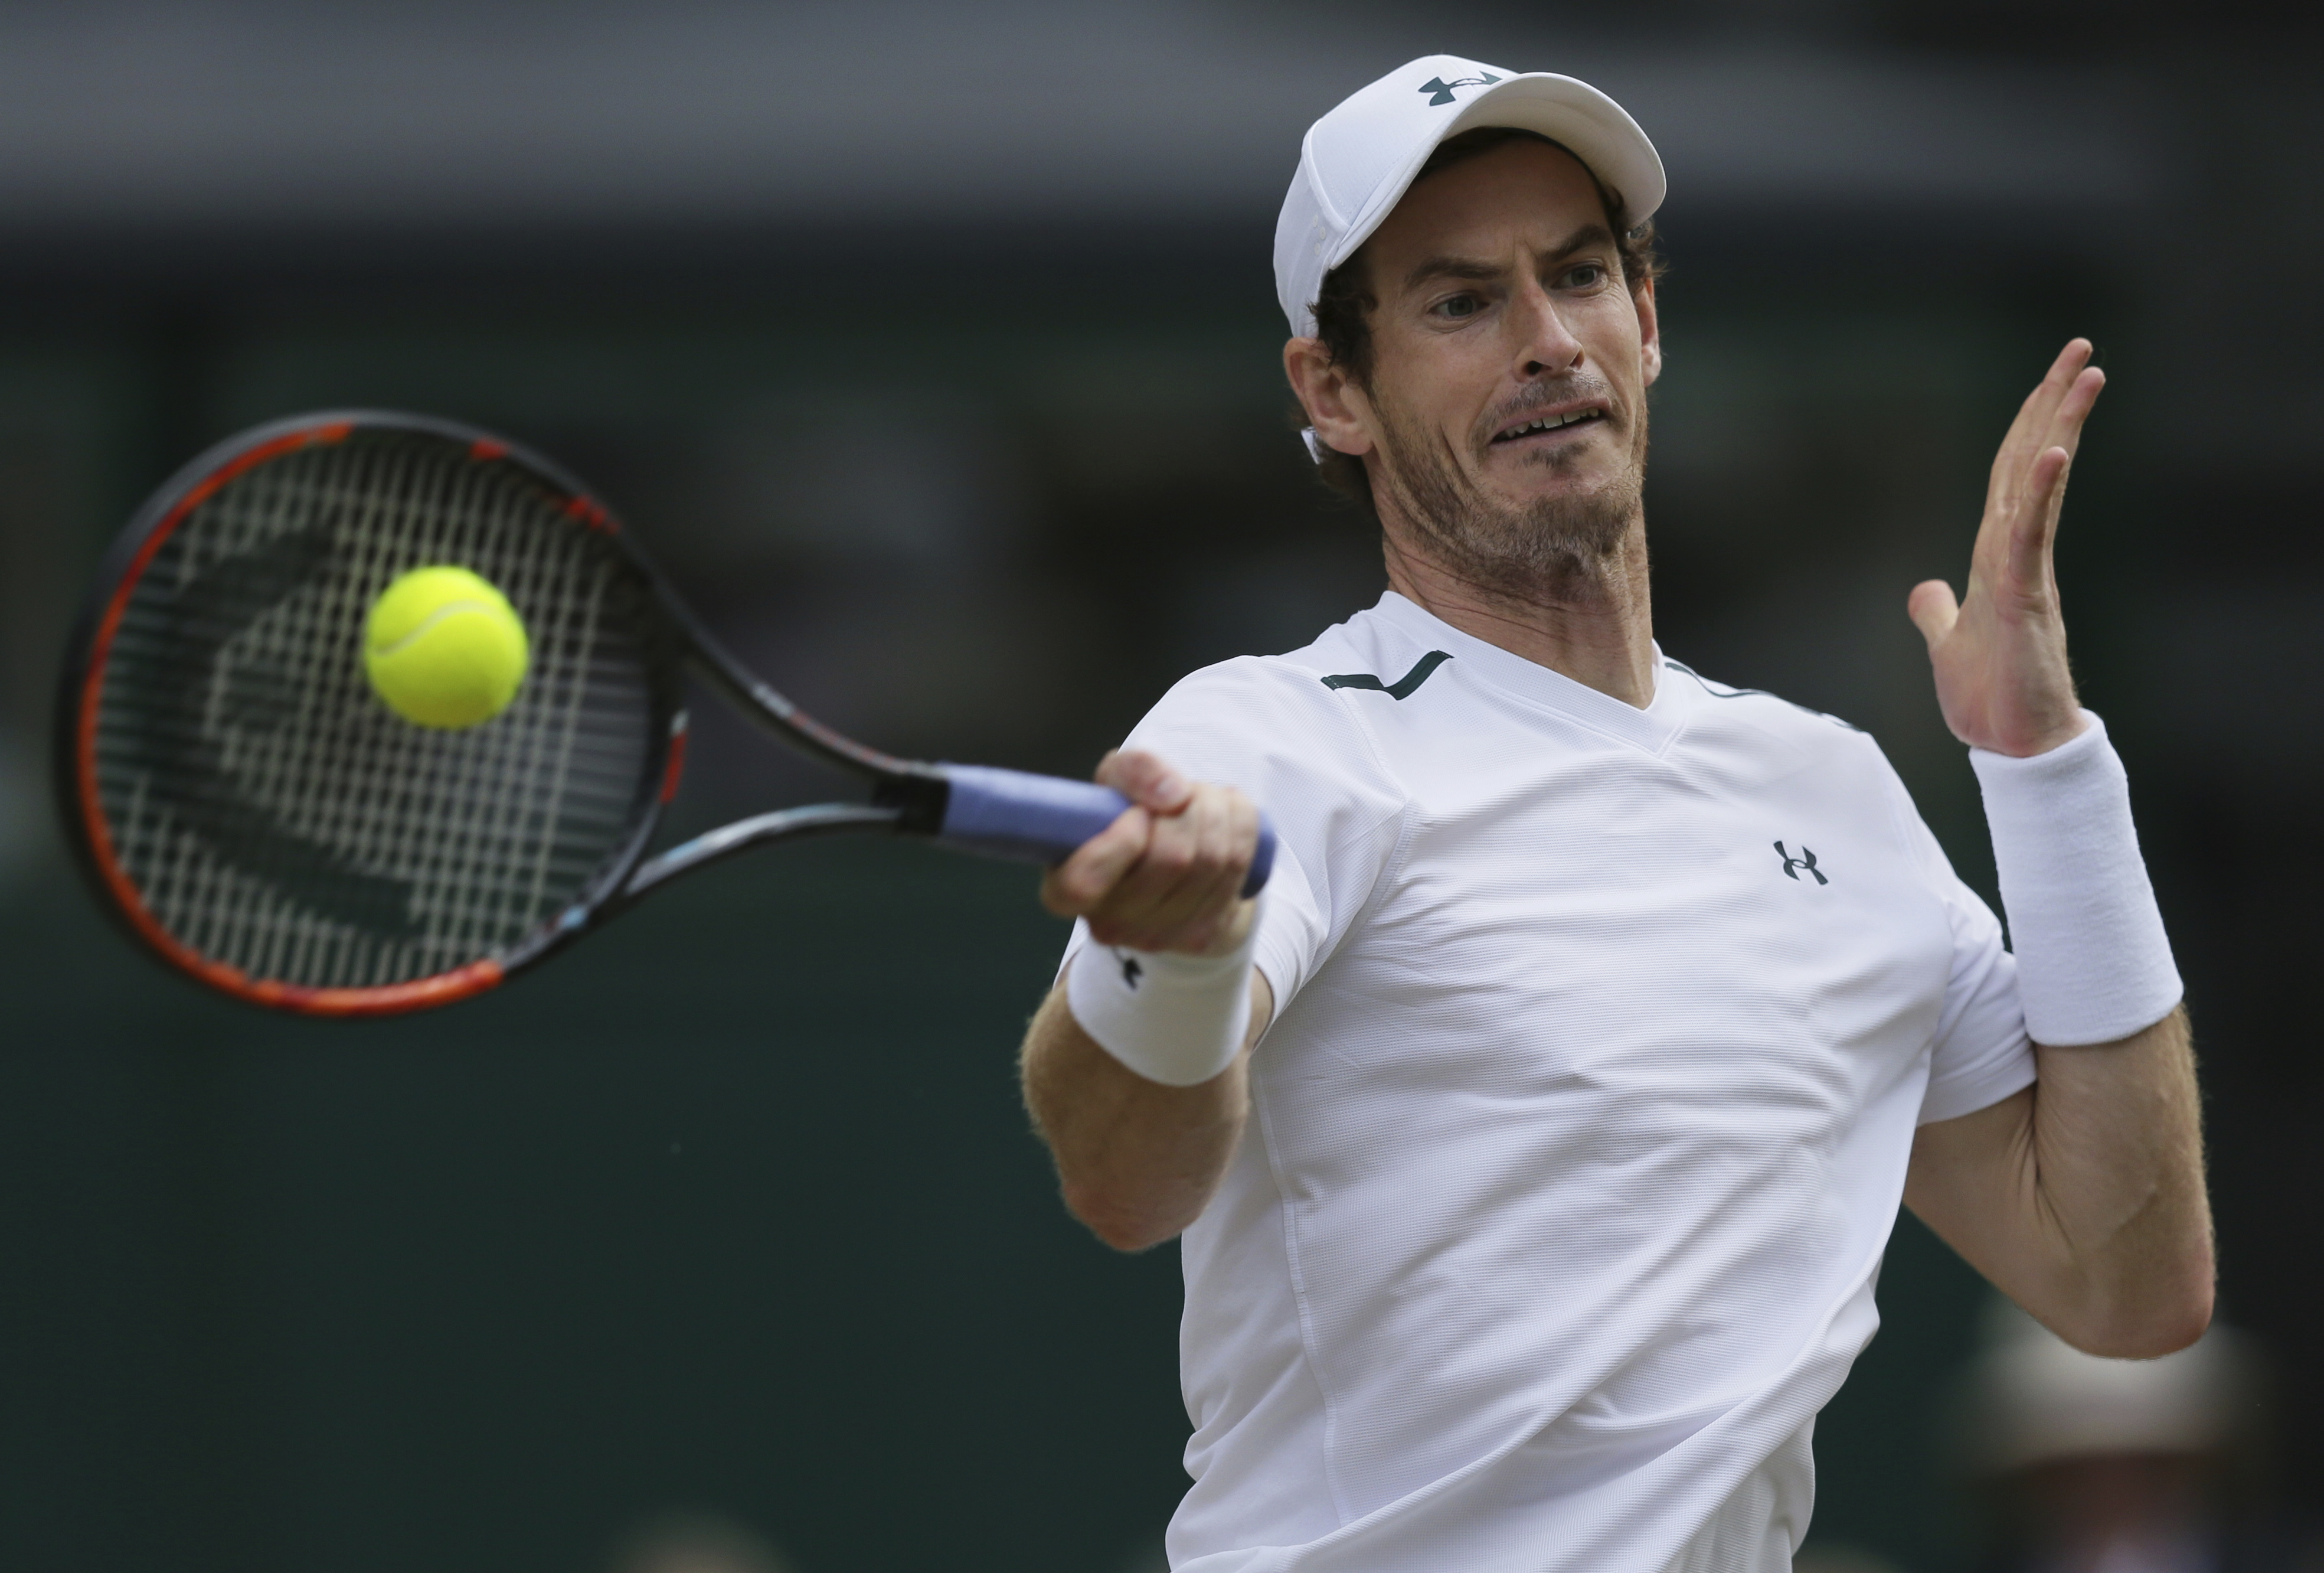 File-This July 12, 2017, file photo shows Britain's Andy Murray returning to Sam Querrey of the United States during their Men's Singles Quarterfinal Match at the Wimbledon Tennis Championships in London. (AP Photo/Tim Ireland, File)